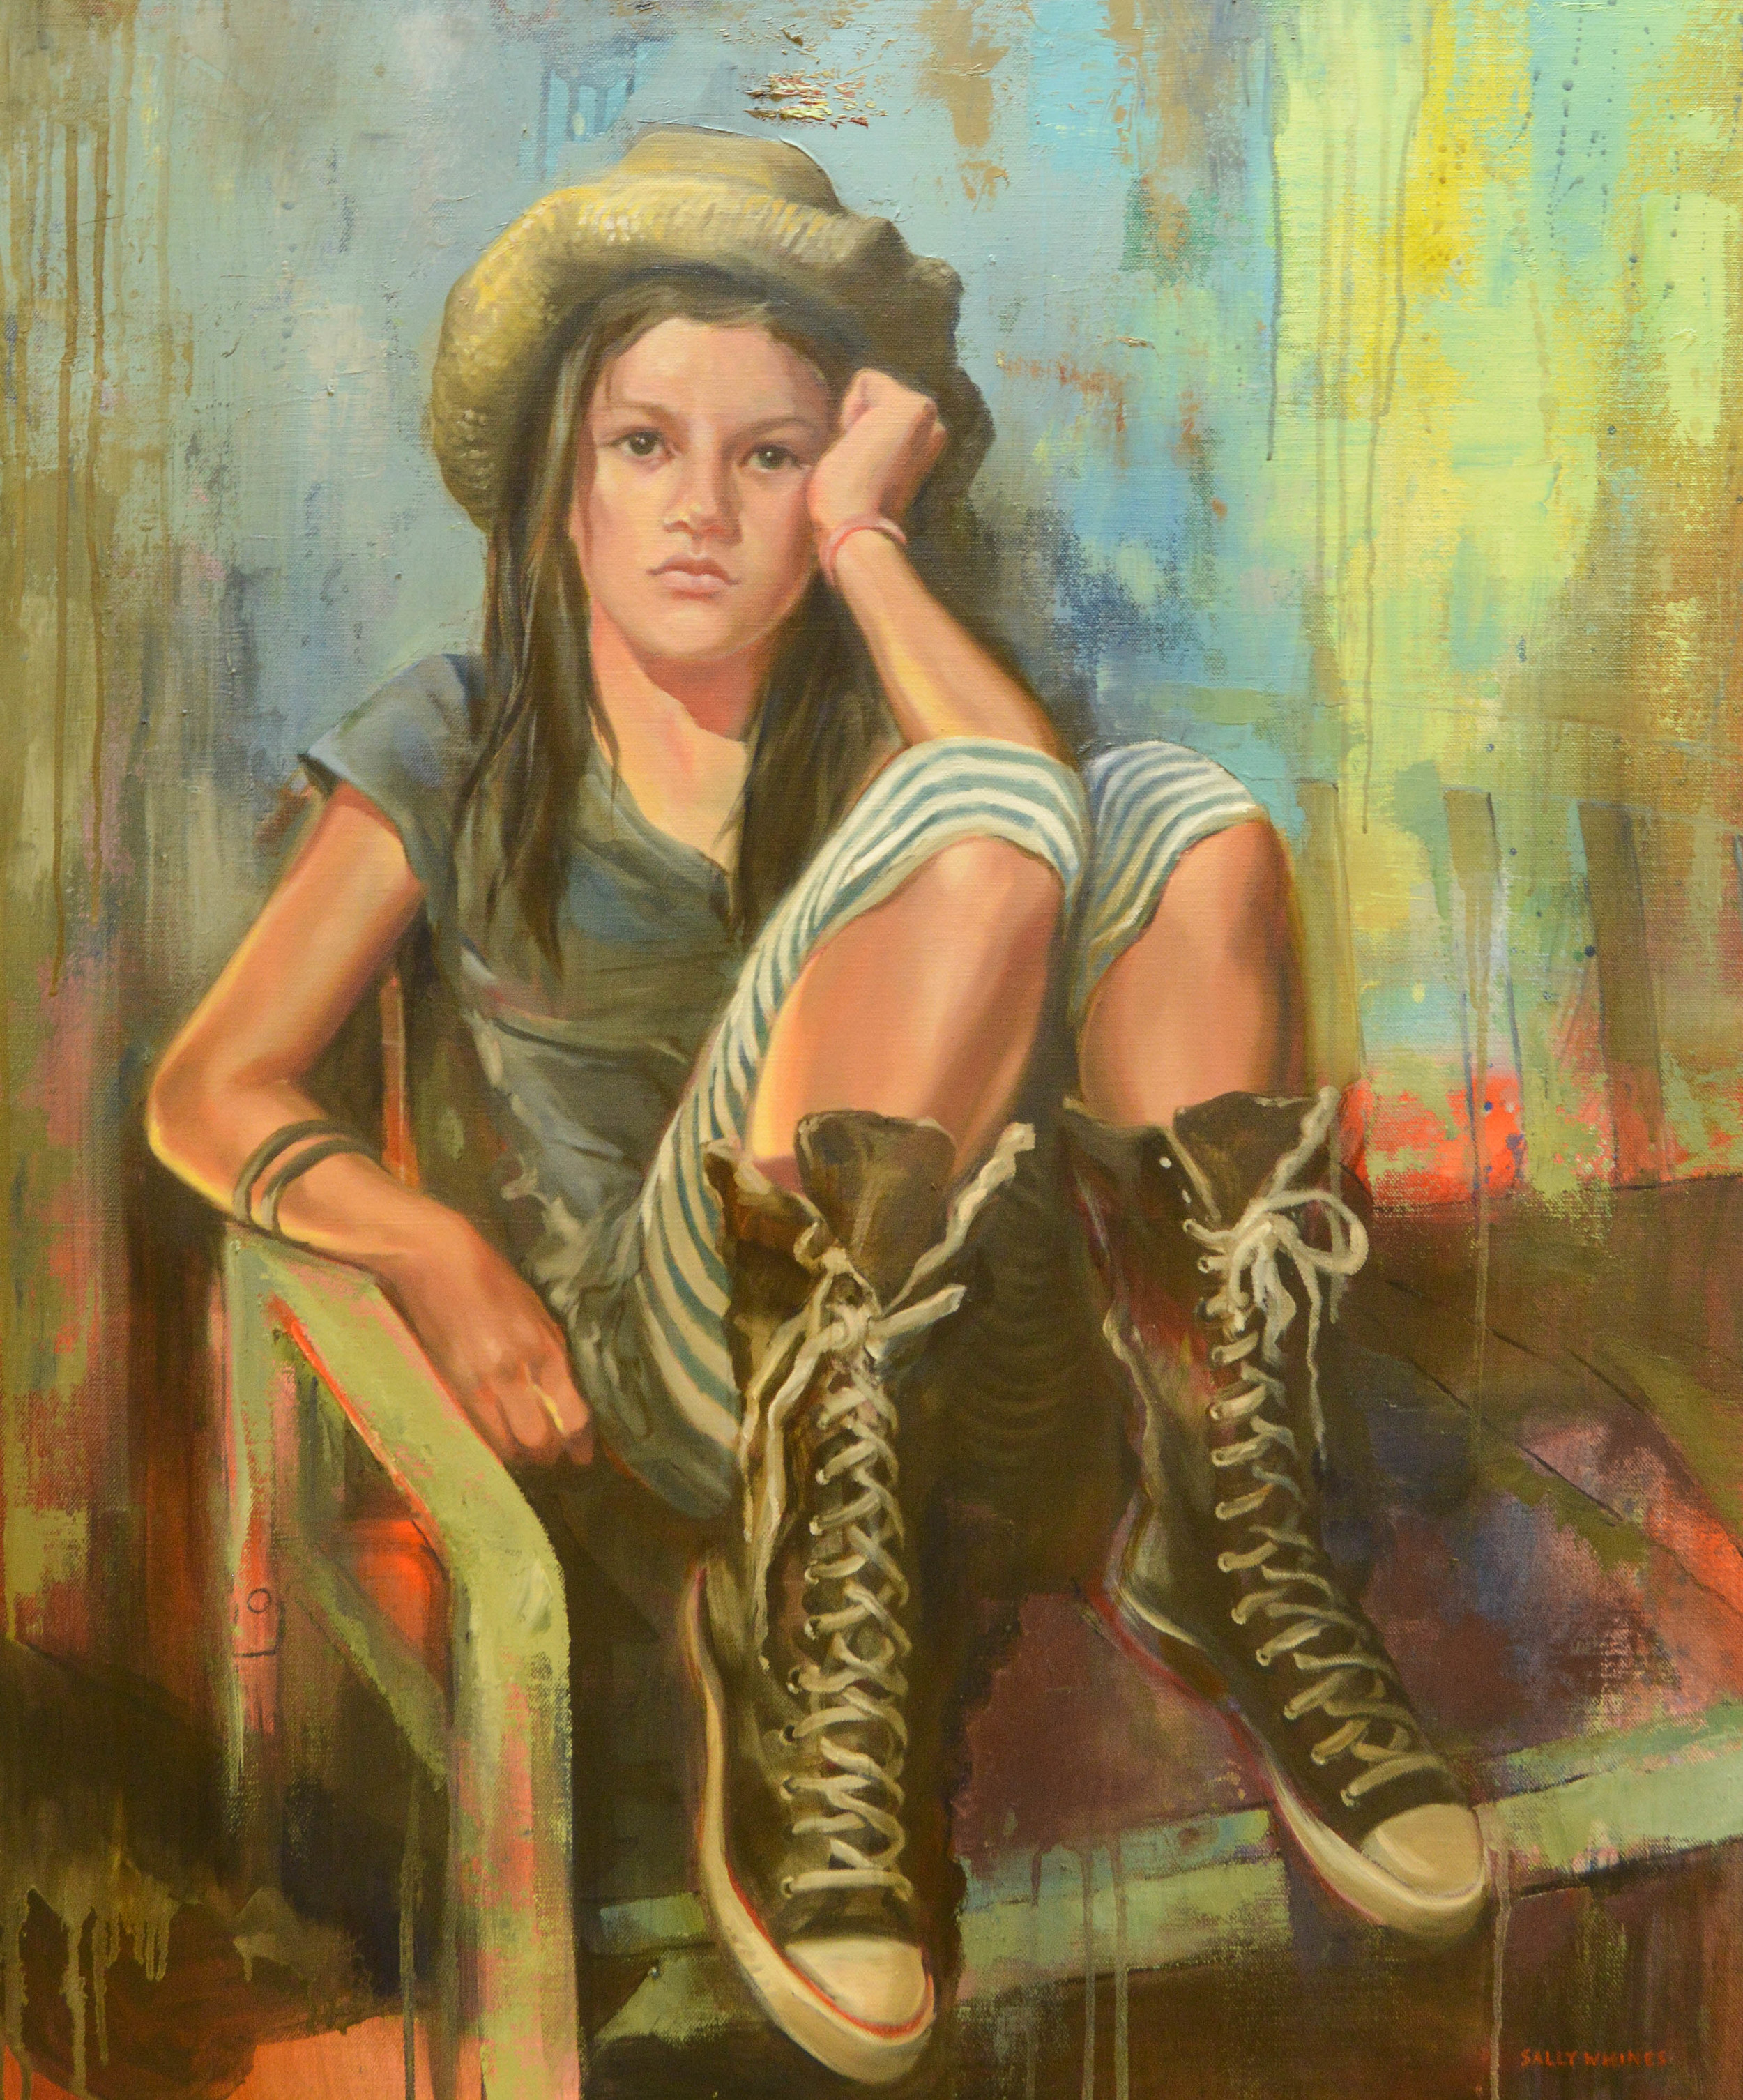 Oil painting by Sally Whines